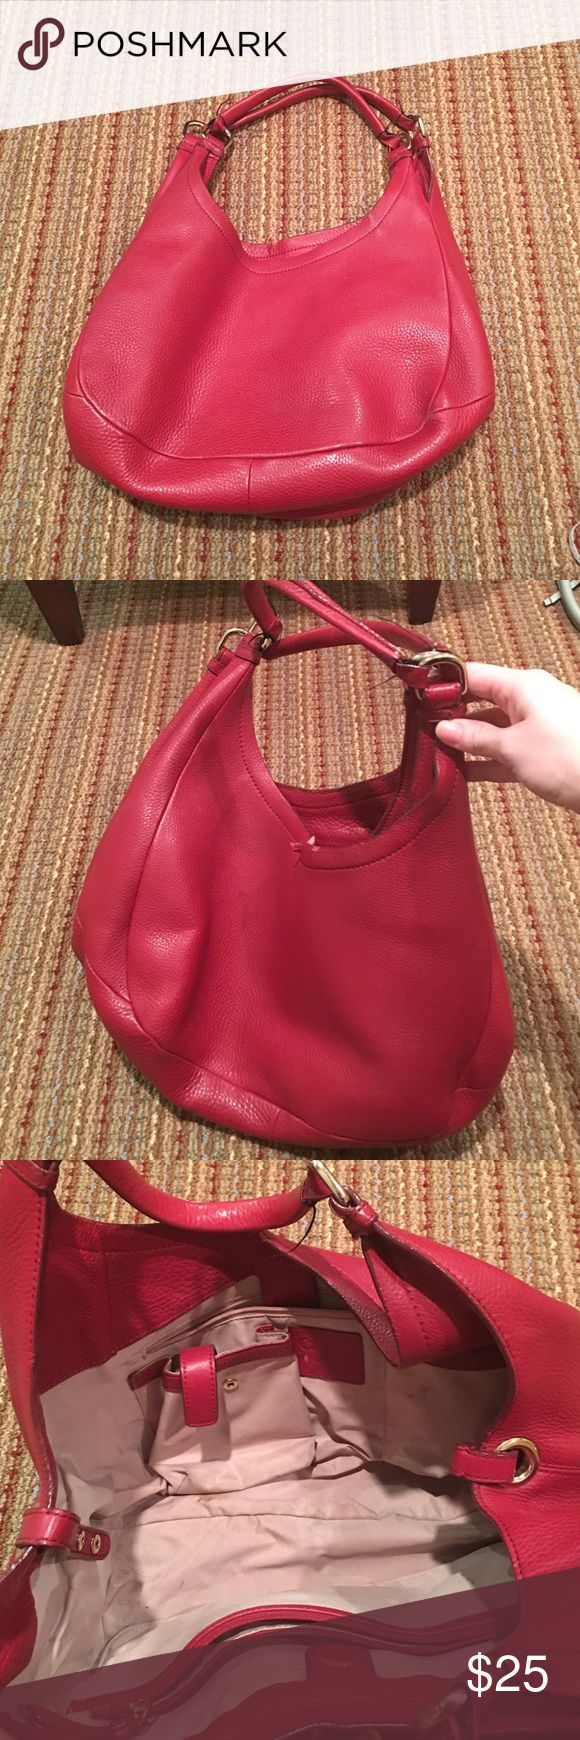 Cole Haan purse Cole Haan red leather purse. A lot of wear and flaws. Torn edge, interior shoes wear and so does handles. 13 inches across and 8 inches deep. Cole Haan Bags Shoulder Bags